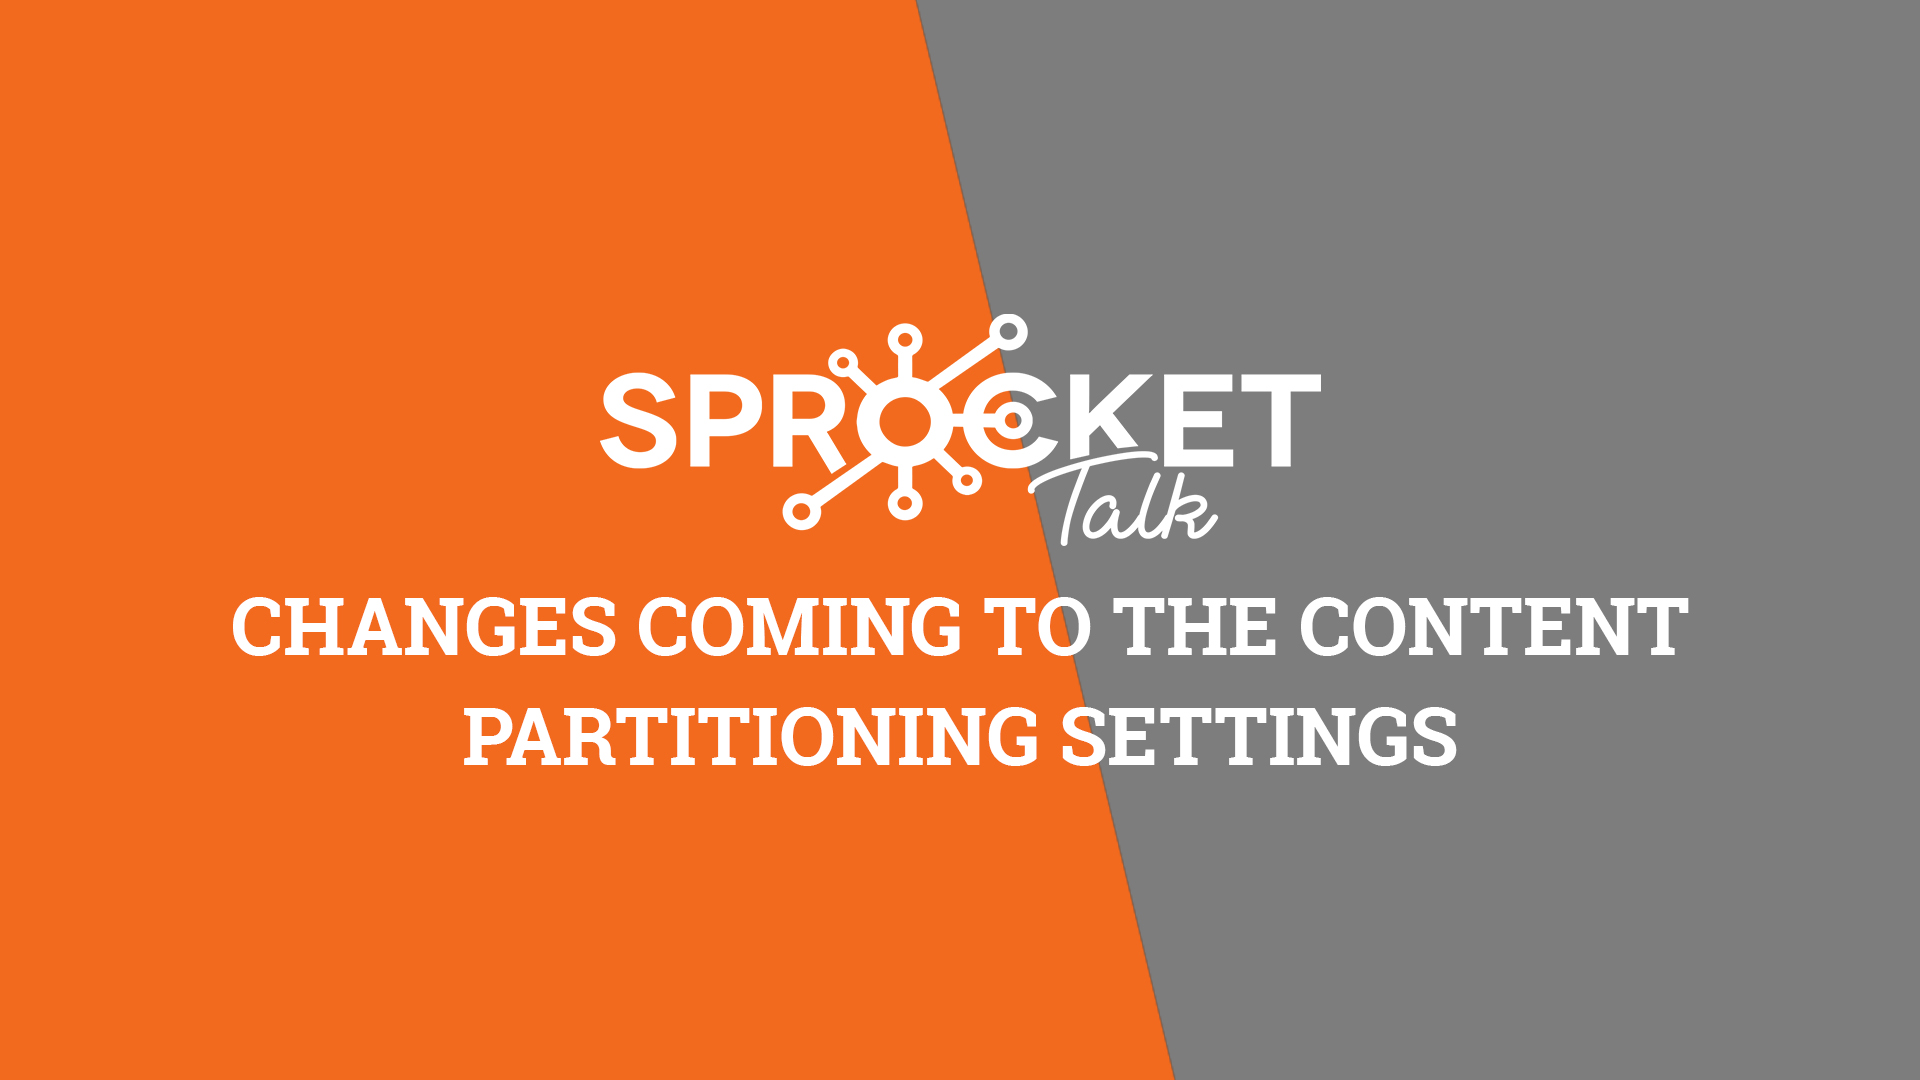 Changes Coming to the Content Partitioning Settings